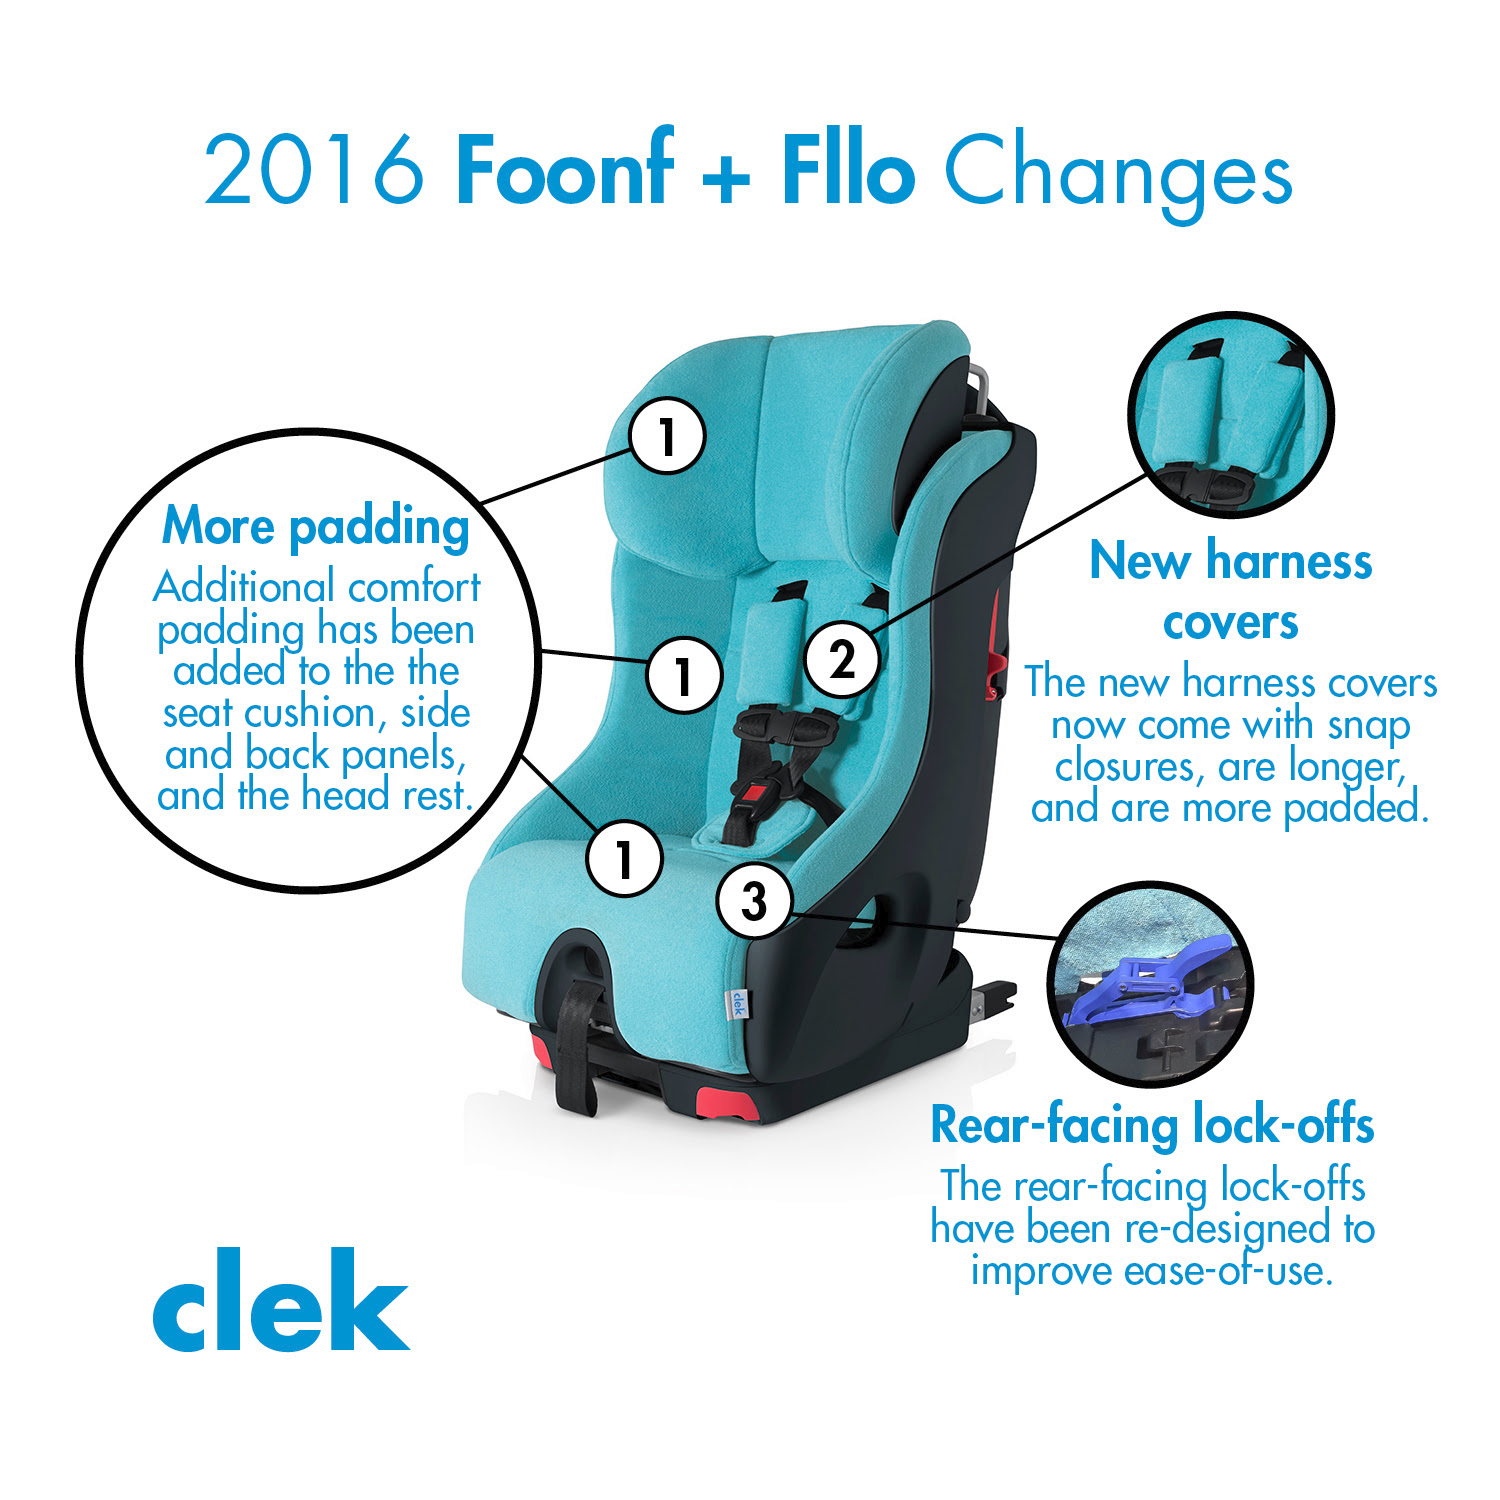 Clek Fllo Convertible Car Seat 2016 Shadow